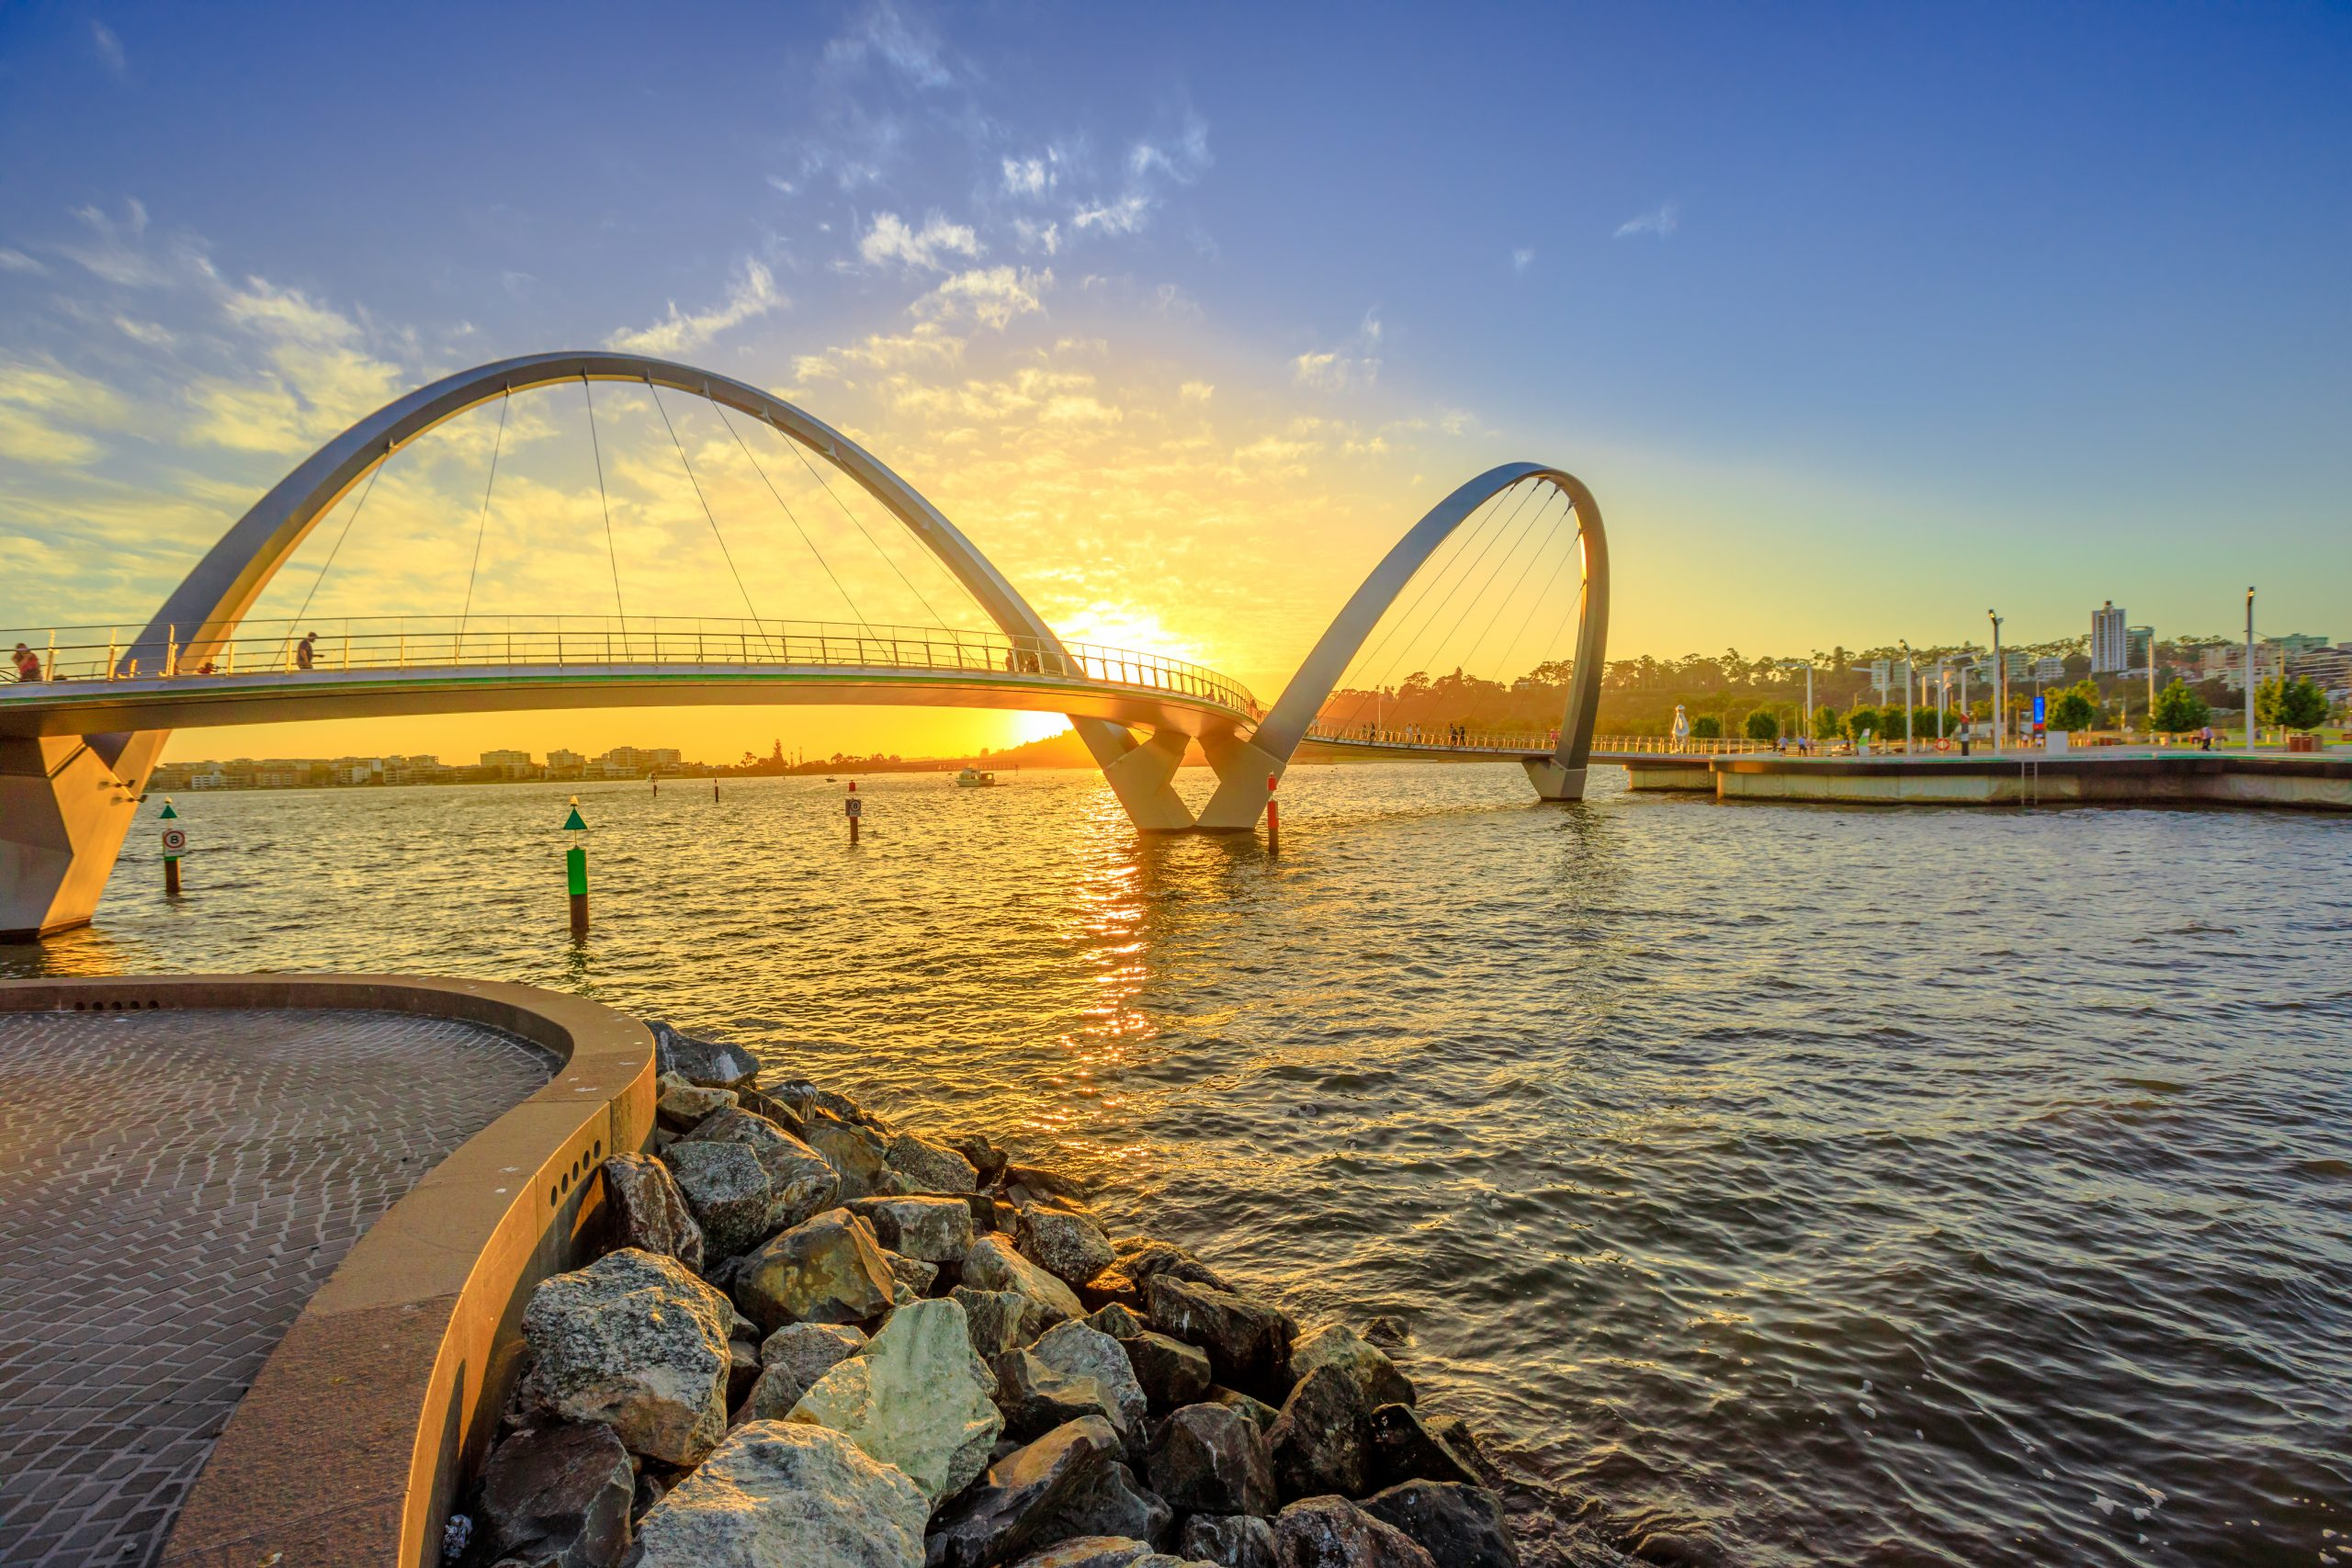 Scenic and iconic Elizabeth Quay Bridge at sunset light on Swan River at entrance of Elizabeth Quay marina. The arched pedestrian bridge is a new tourist attraction in Perth, Western Australia.